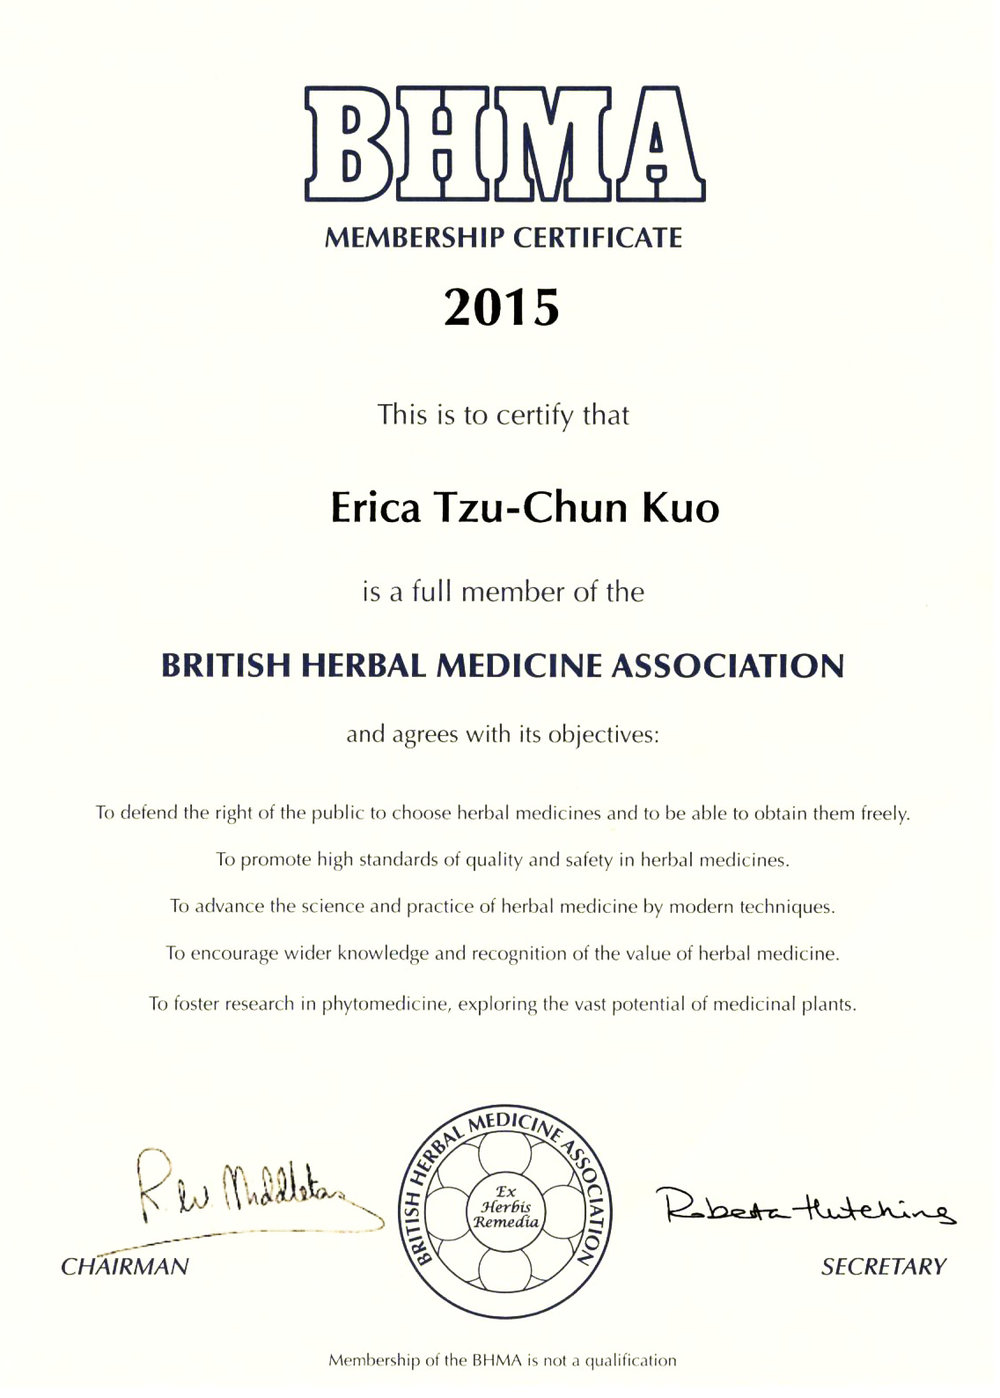 British herbal medicine association - I Not Only Focus On The Properties Of Herbs But Also On Herbs Safety And Interaction With Medicine Chinese Herbs And Supplements